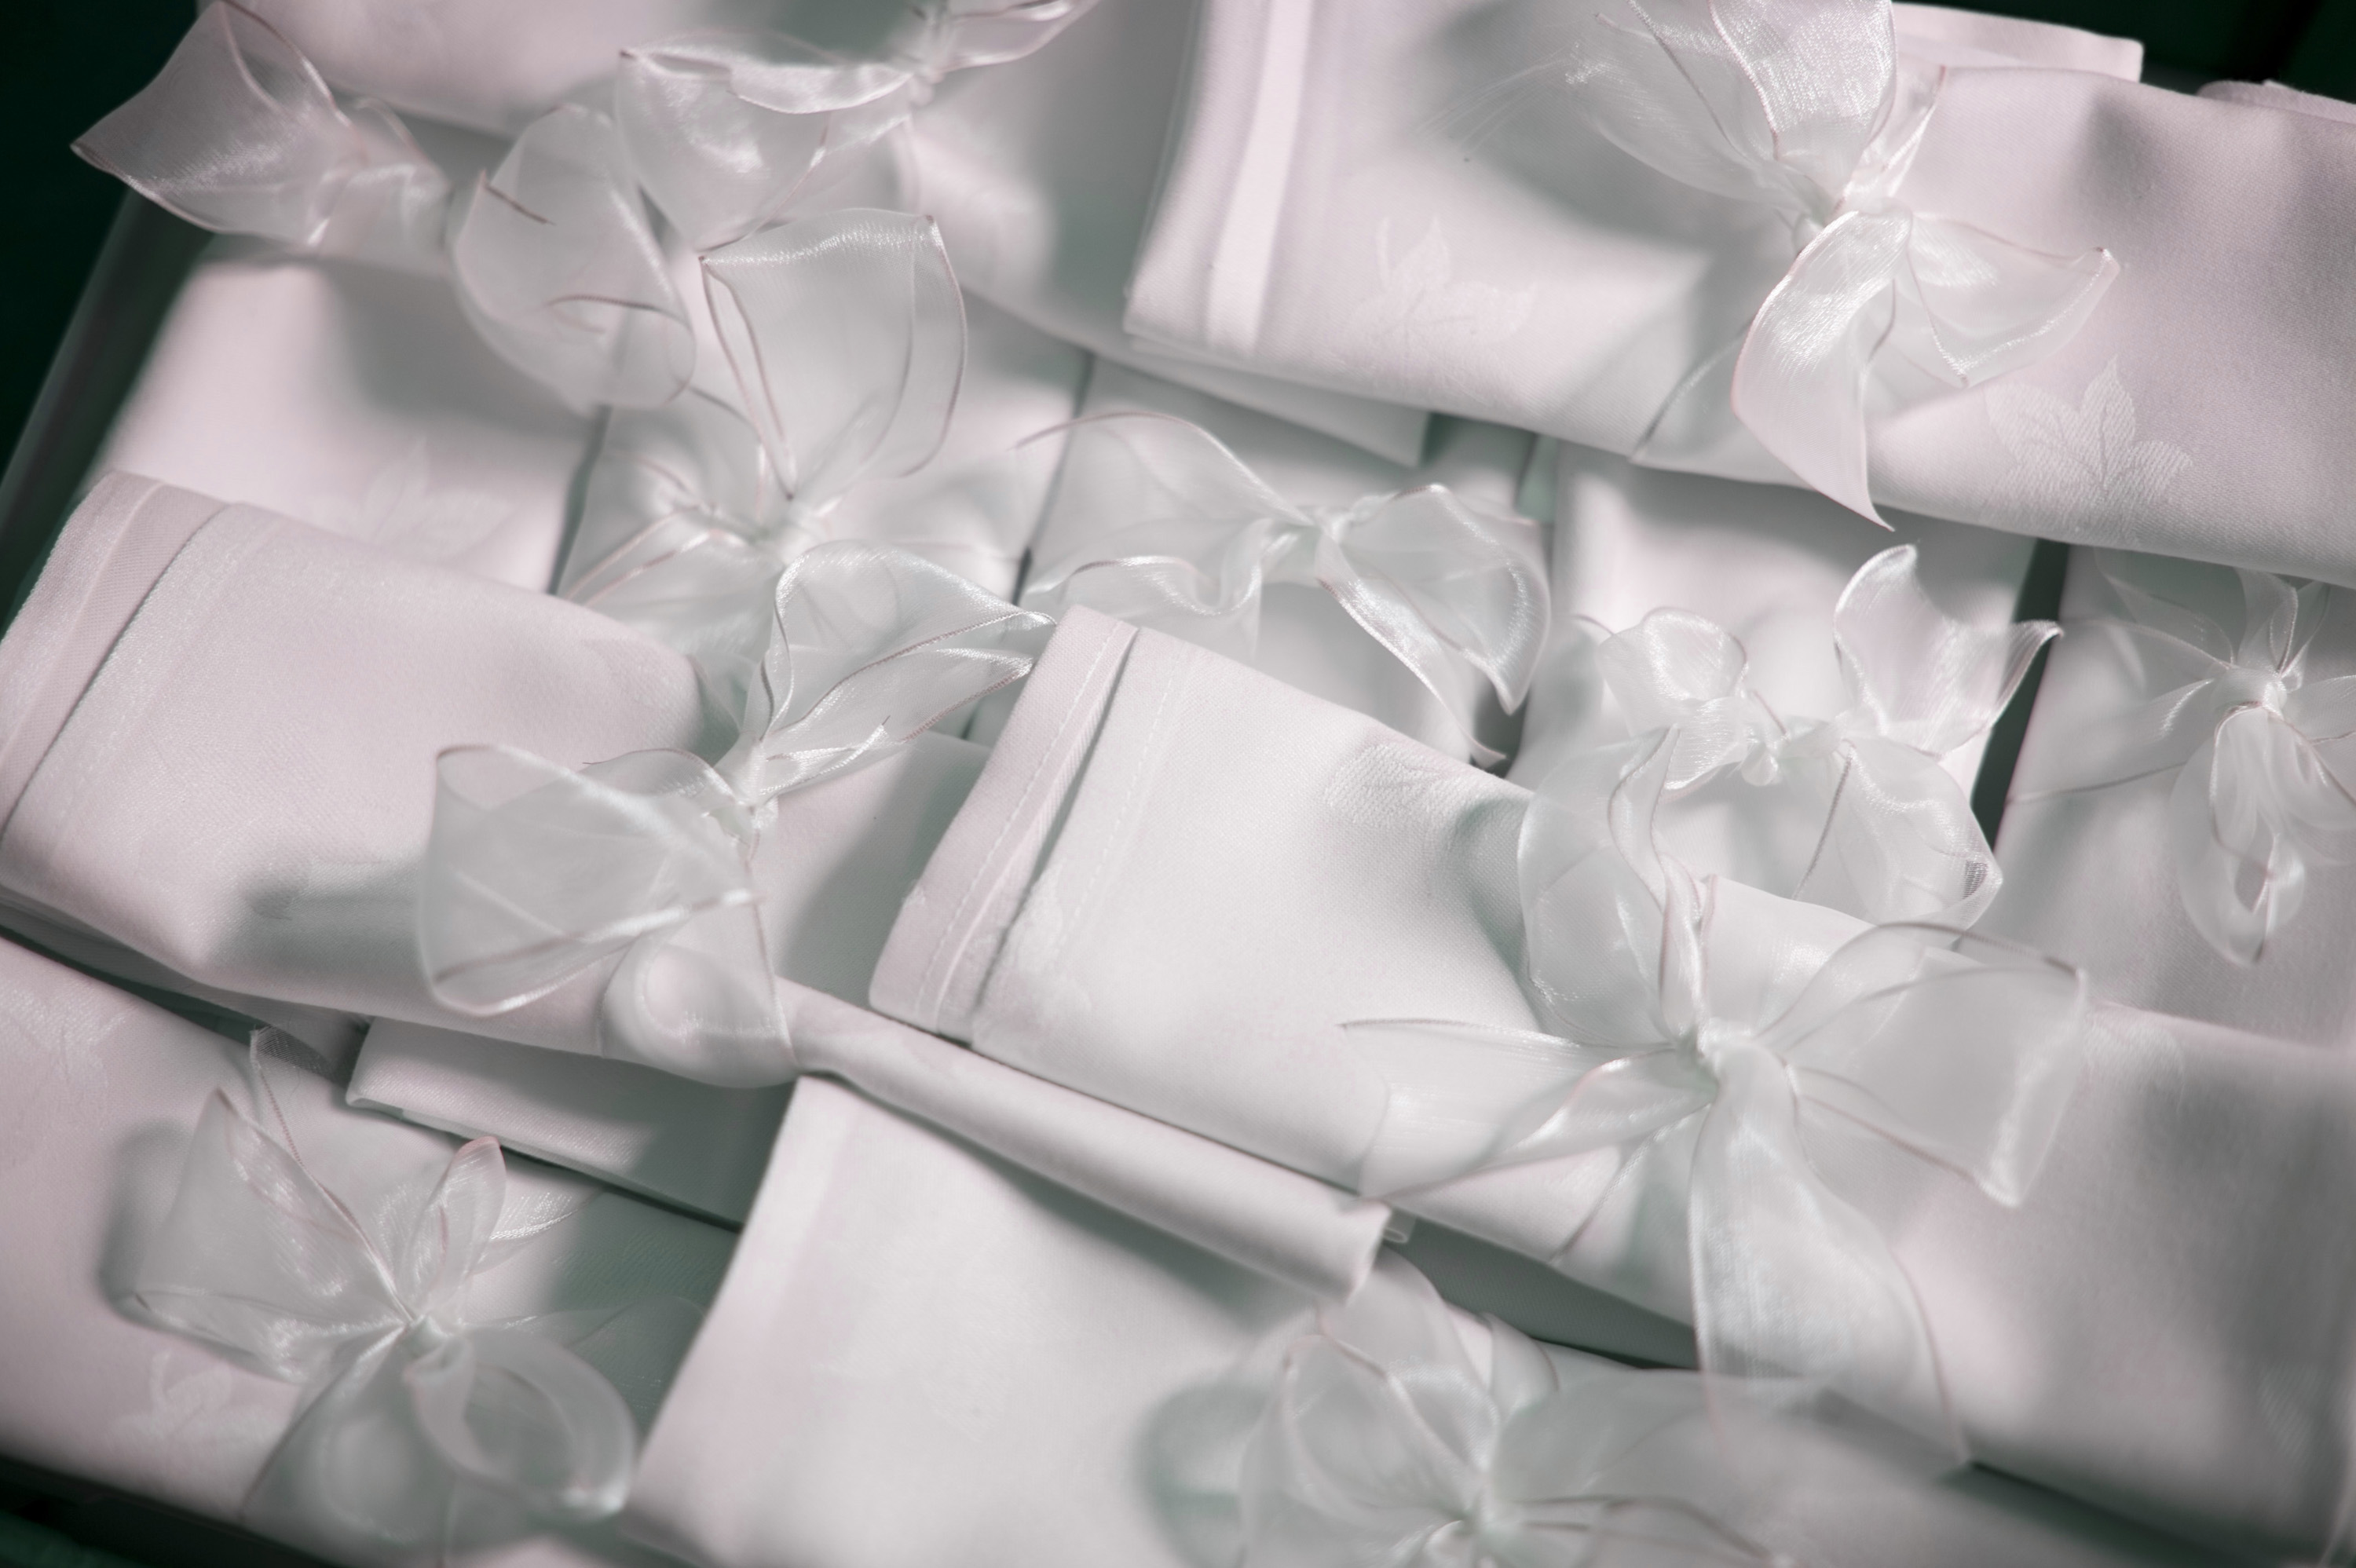 white napkins napkins for wedding Accept License and Download Image